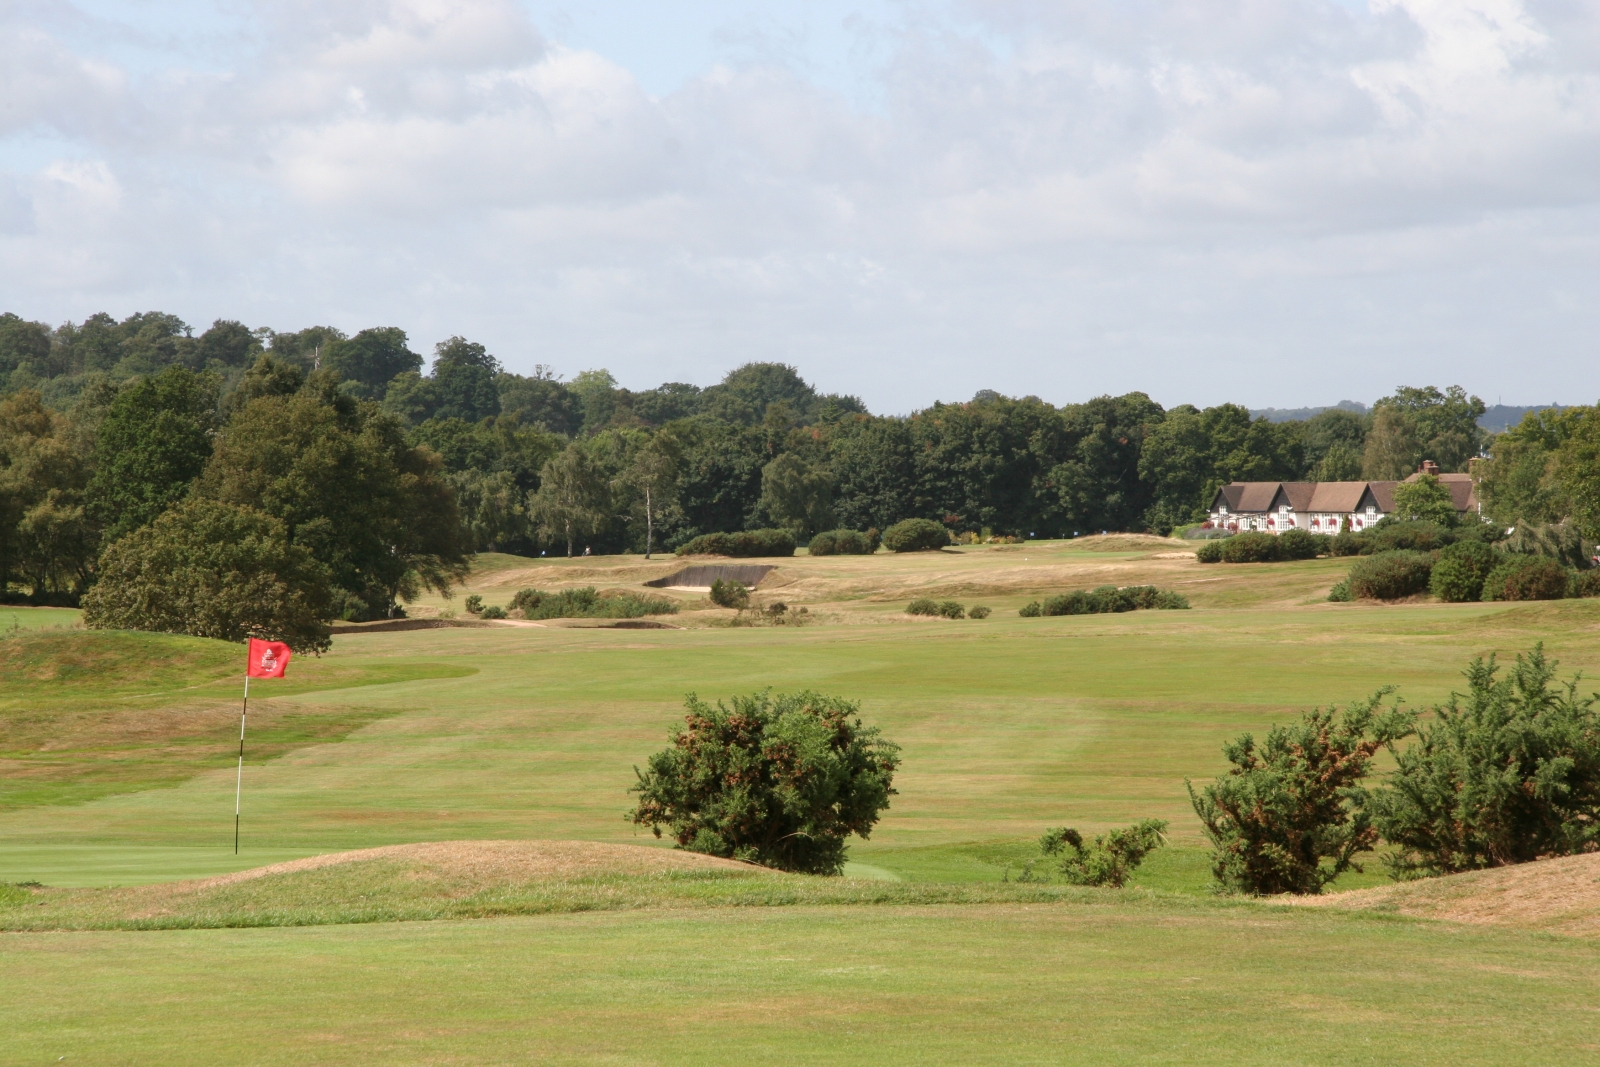 The view from the fourth tee